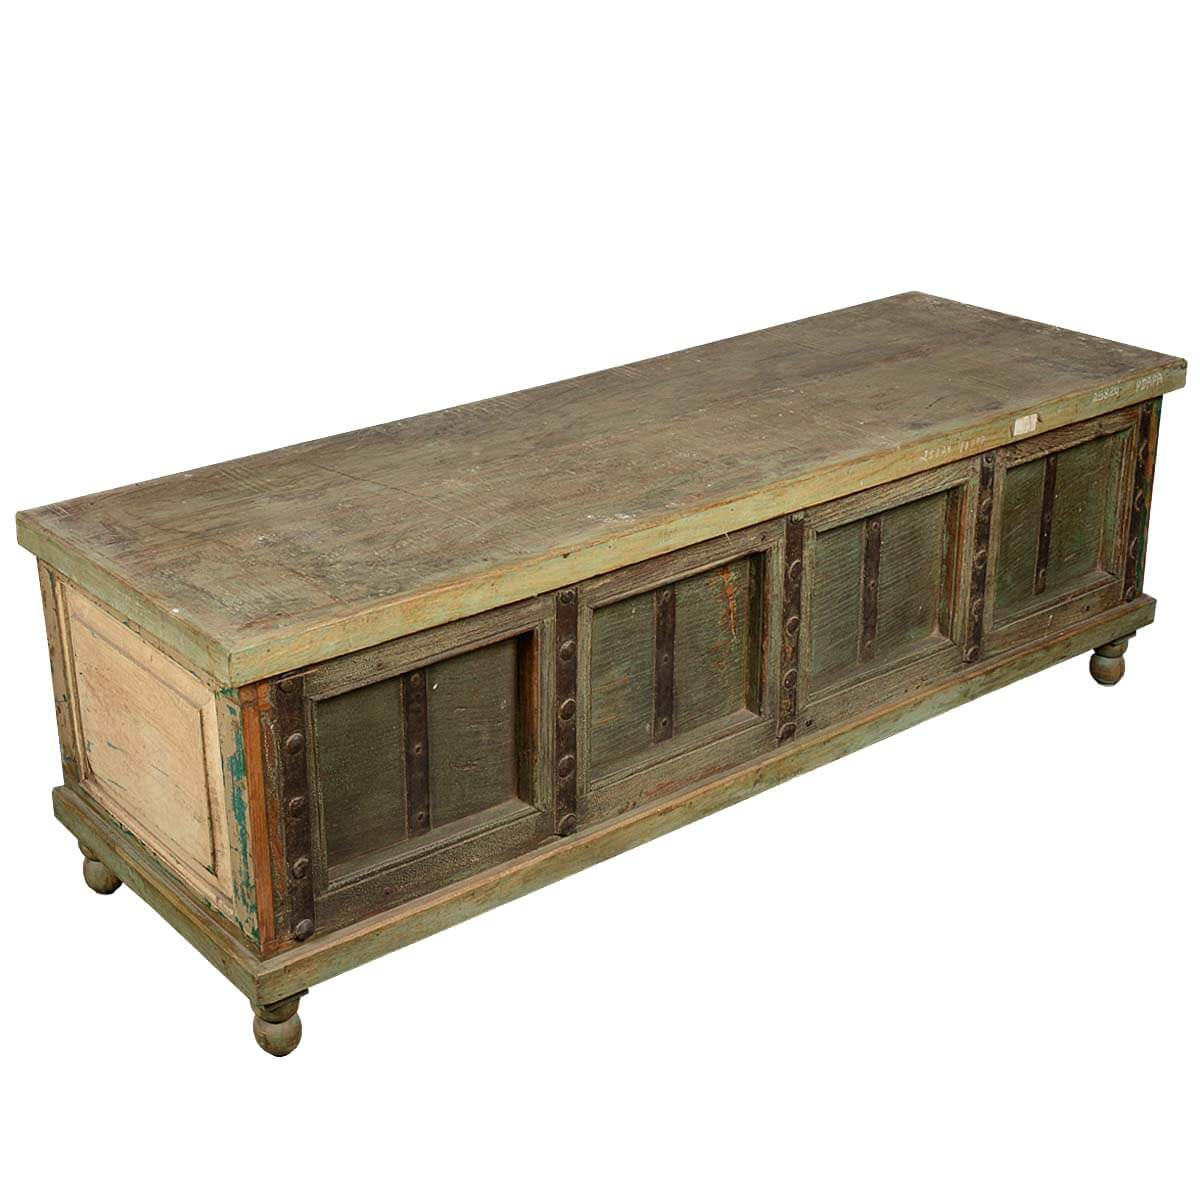 Rustic reclaimed wood gothic large storage trunk chest - Footlockers storage ...